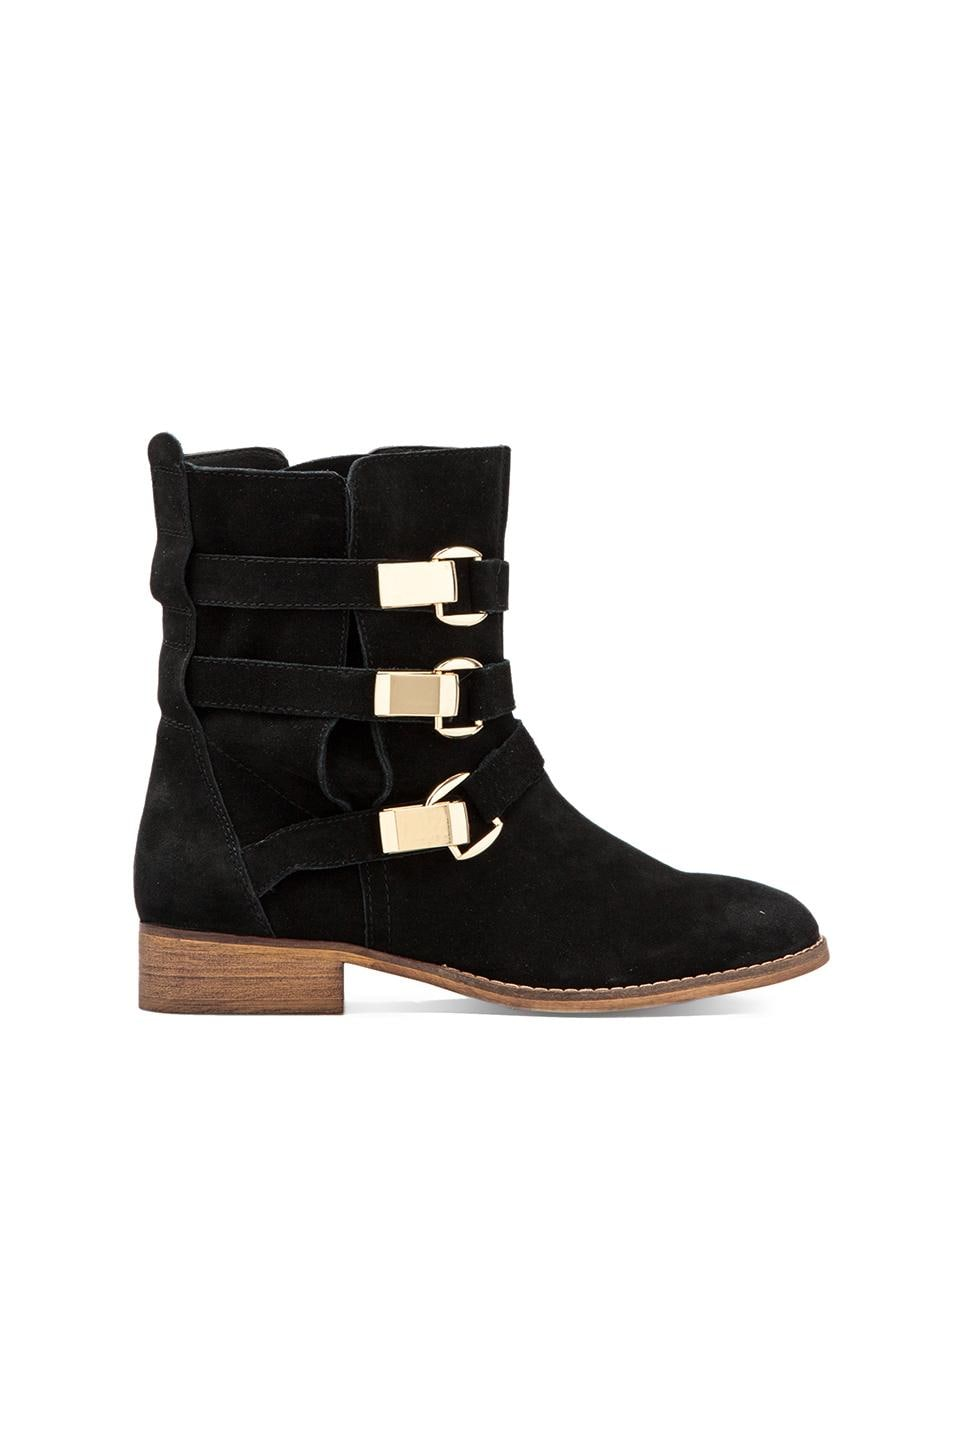 Steve Madden Haggle Boot in Black Suede